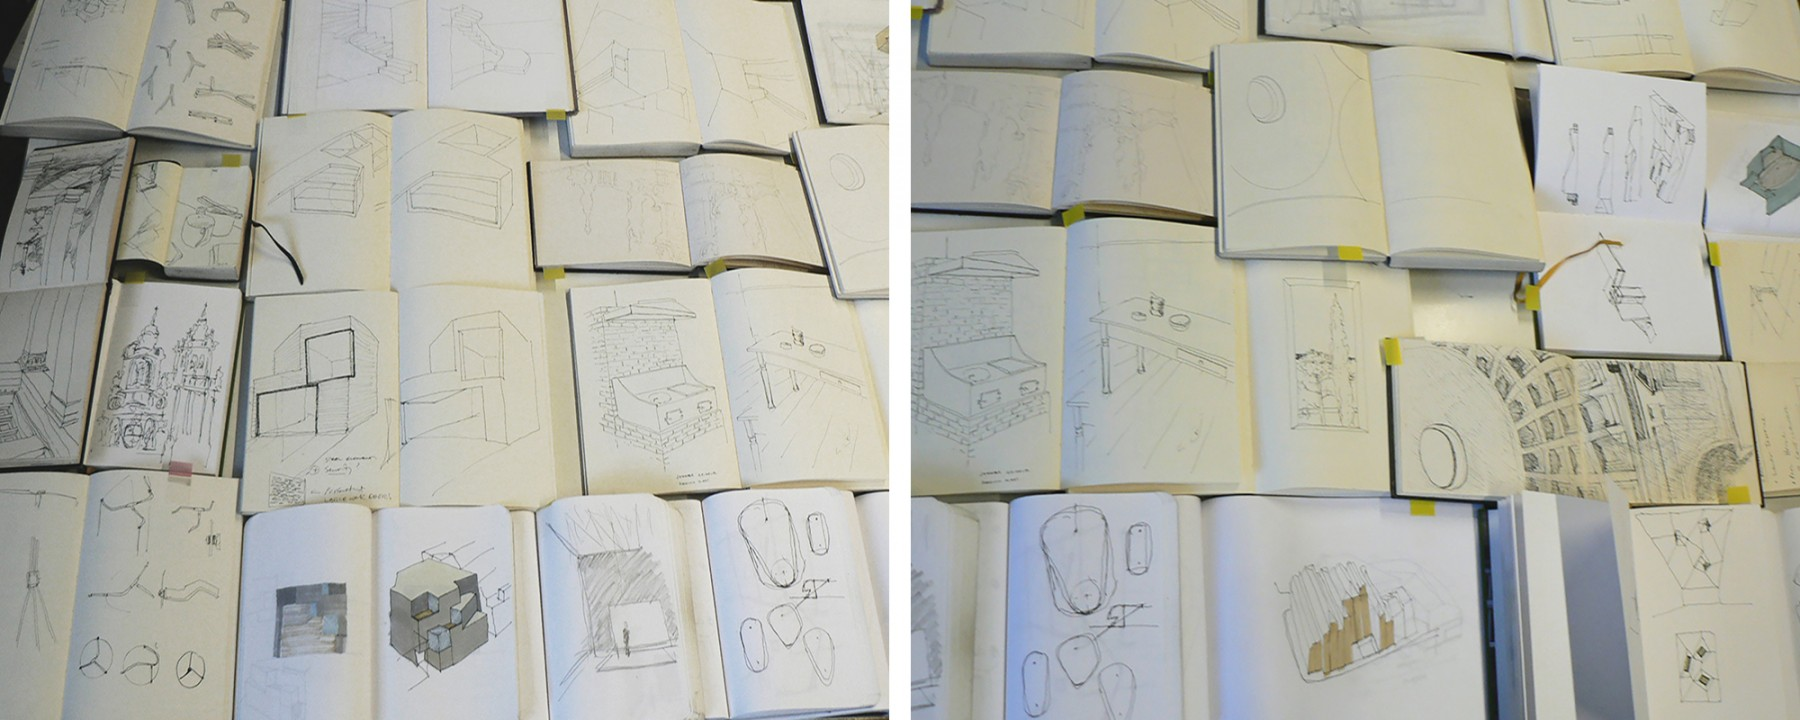 Jamie-Fobert-Architects-C4RD-Exhibition-Architecture-Sketch-Books-sketches-collage